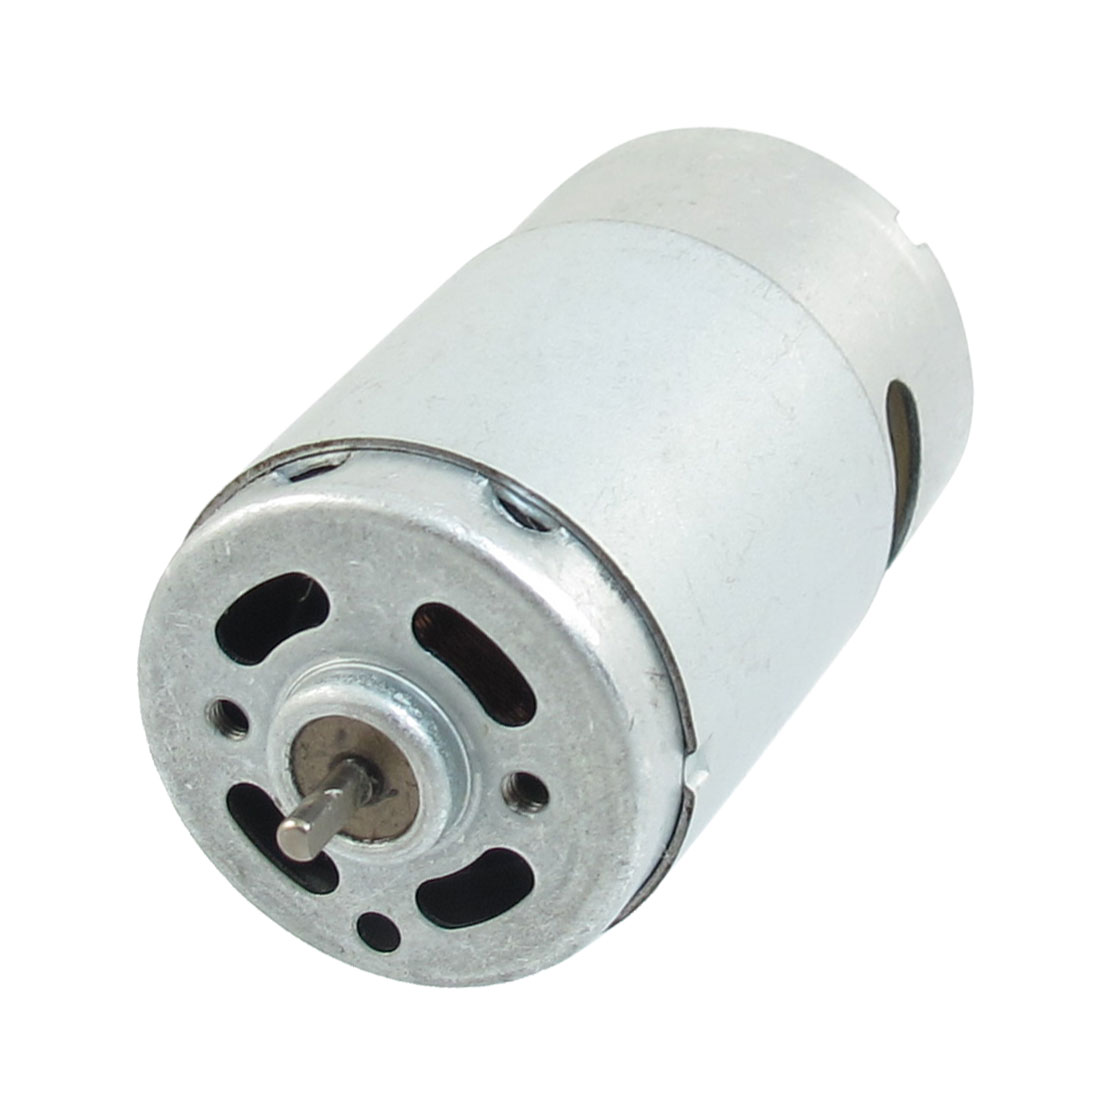 Metal Housing Round Shape Magnetic Micro Motor 9600RPM 0.08A 24V DC